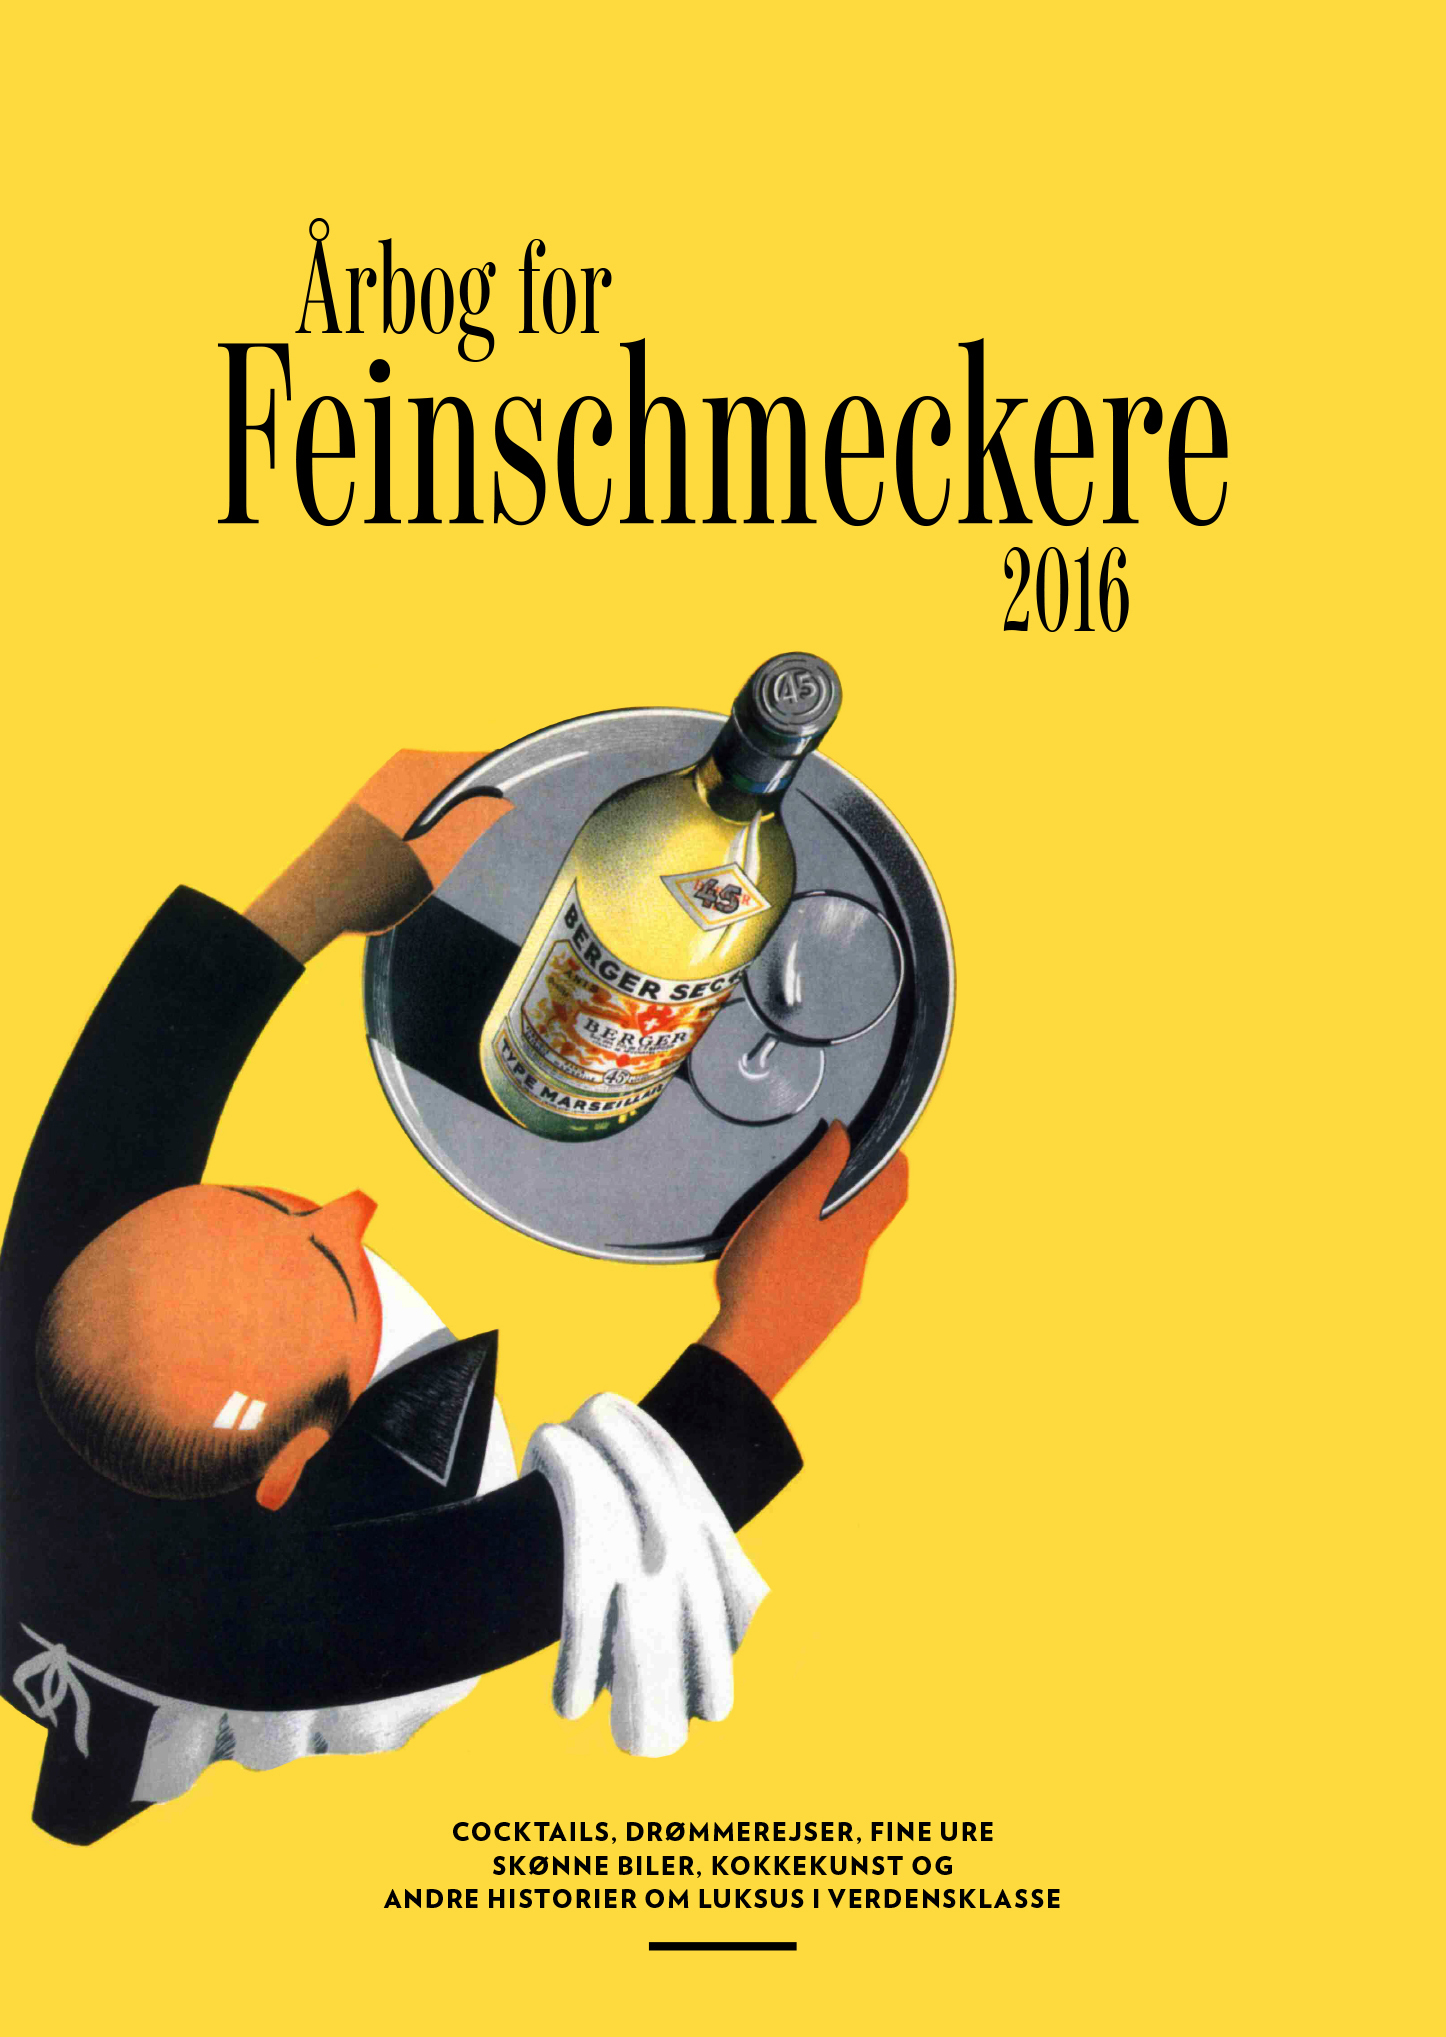 Årbog for Feinschmeckere 2016